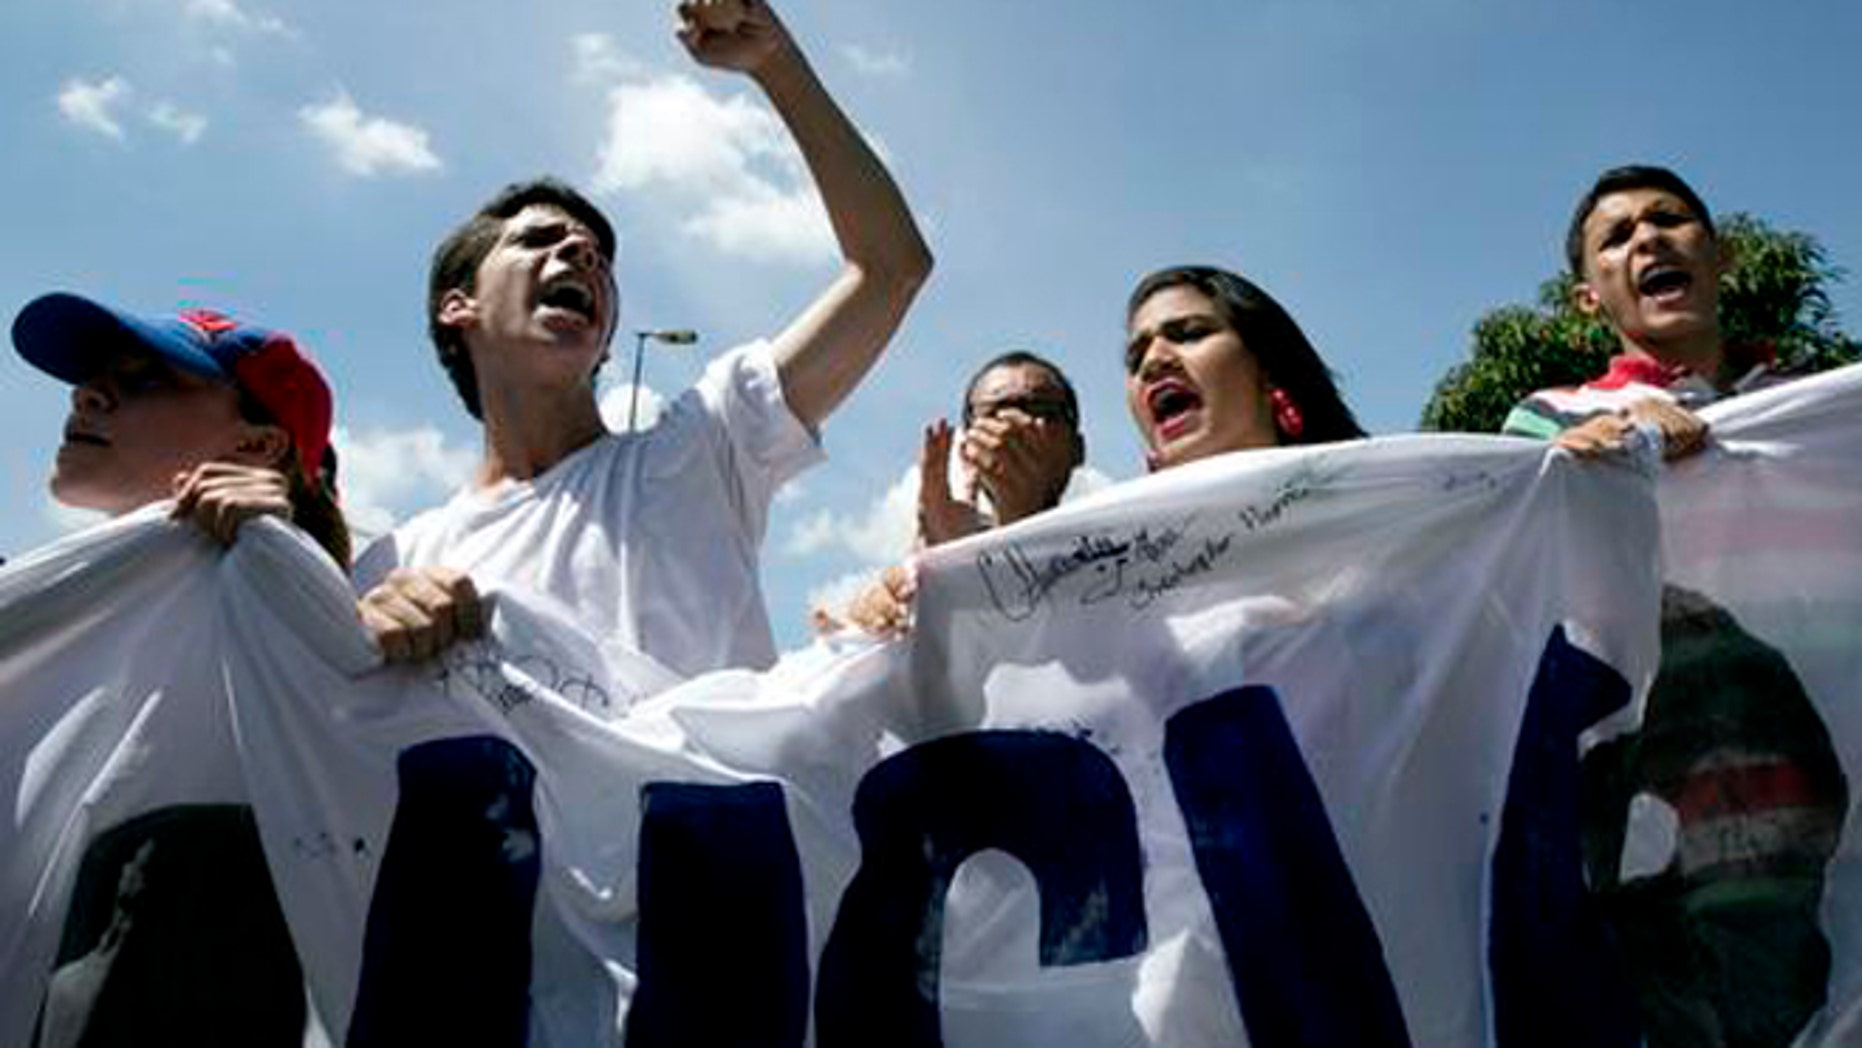 University students protest to demand a recall referendum against Venezuela's President Nicolas Maduro in Caracas, Venezuela, Friday, Oct. 21, 2016. Venezuela's electoral authority suspended a recall drive against Maduro on Thursday, less than a week before it was set to start, throwing the opposition's key campaign to oust the leader into further disarray. (AP Photo/Ariana Cubillos)